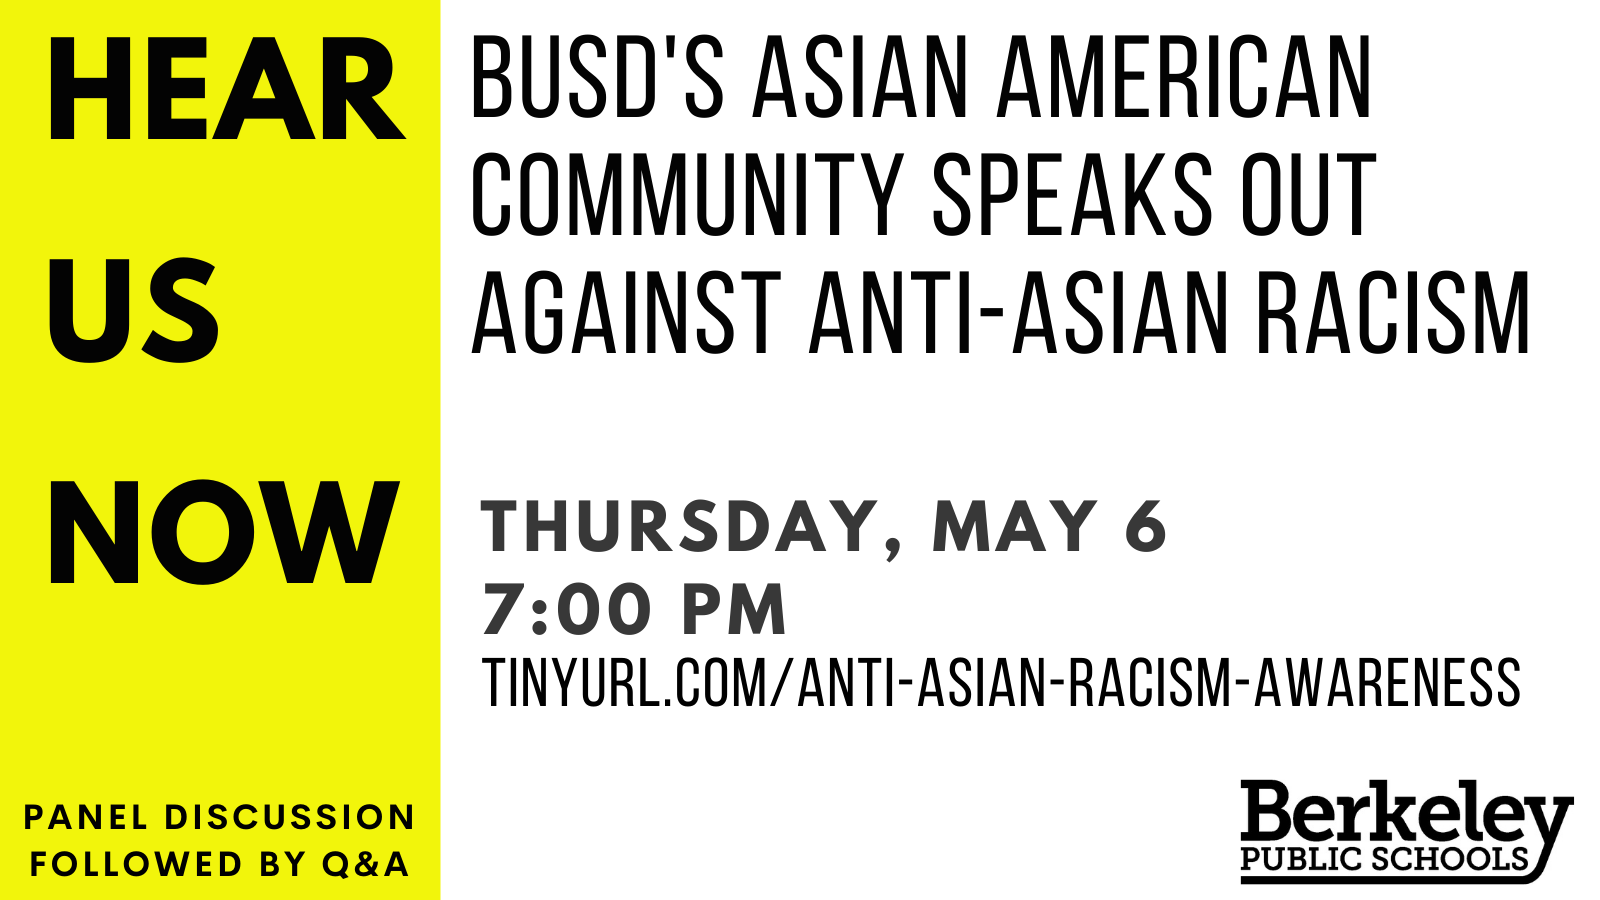 Hear us Now: BUSD's Asian American community speaks out against anti-asian racism. Thursday, May 6 at 7:00 pm. tinyurl.com/anti-asian-racism-awareness